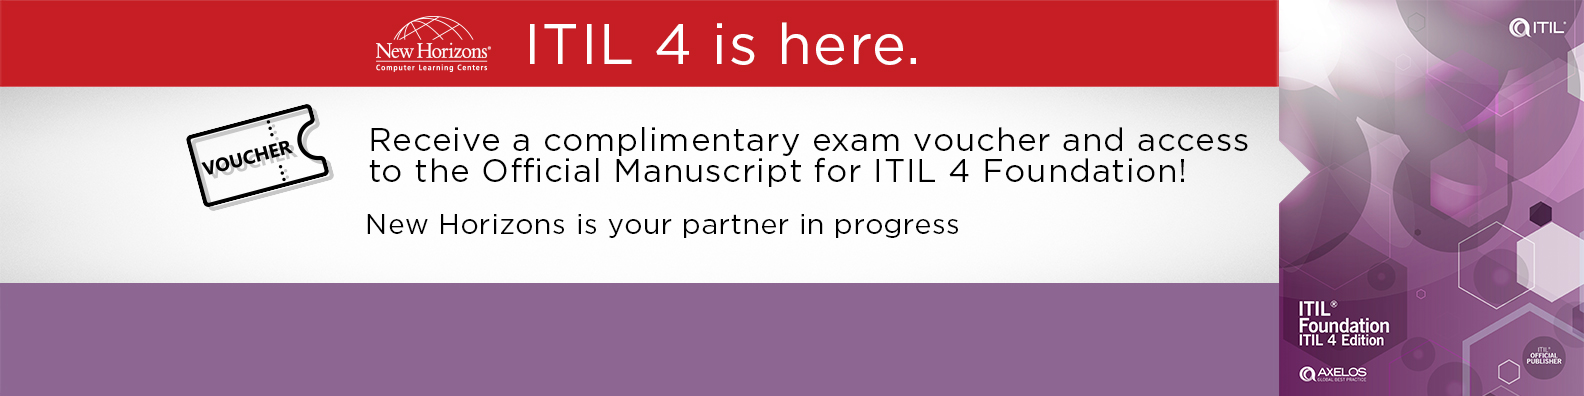 LinkedIn - ITIL 4 is Here